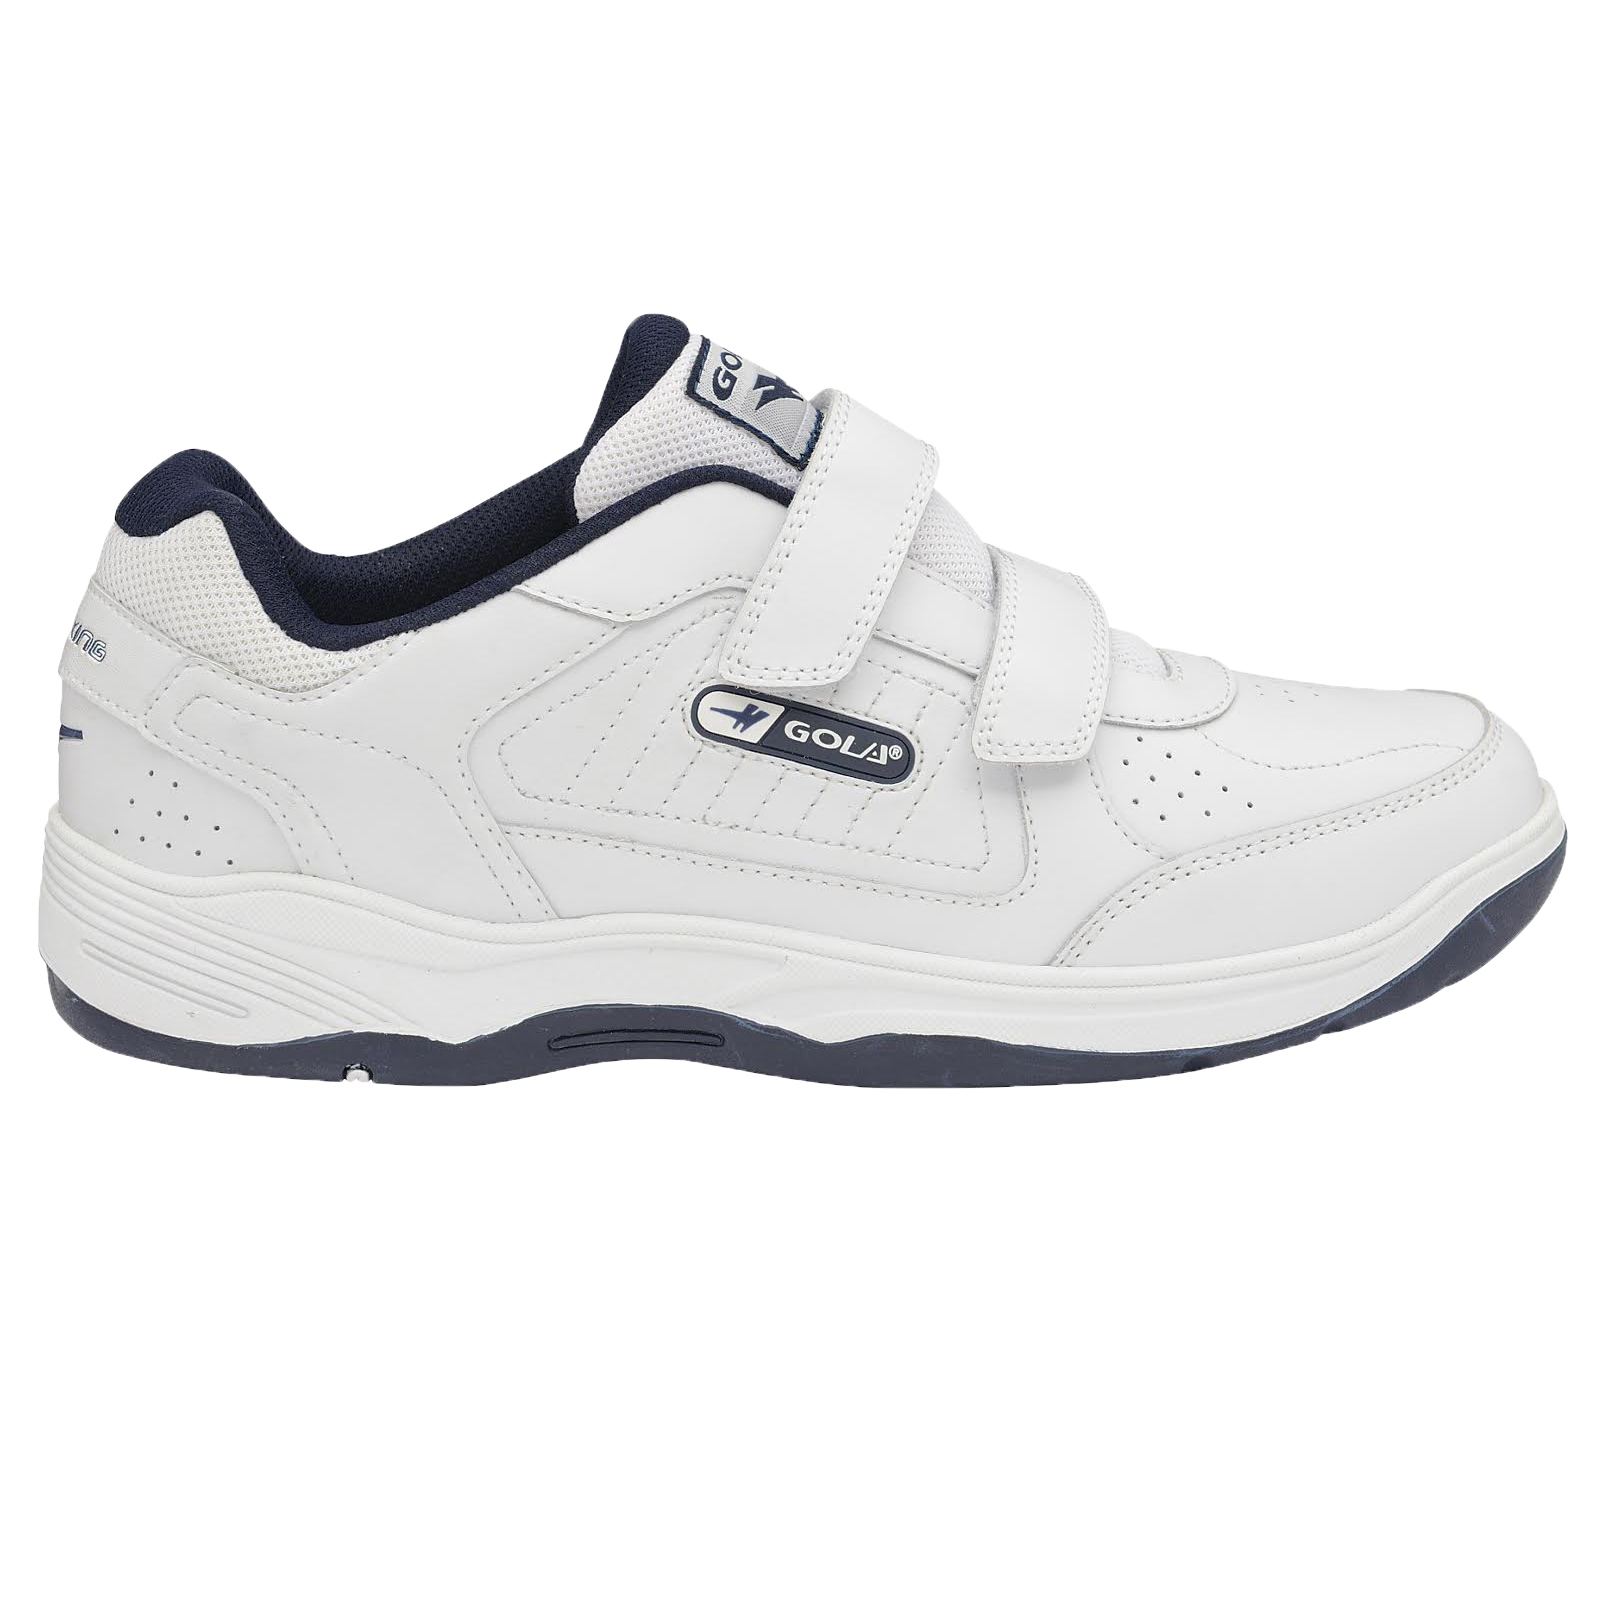 Gola-Belmont-Wide-Fit-EE-Mens-Leather-Or-Suede-Trainers-Size-7-15-UK-Touch-Strap thumbnail 5